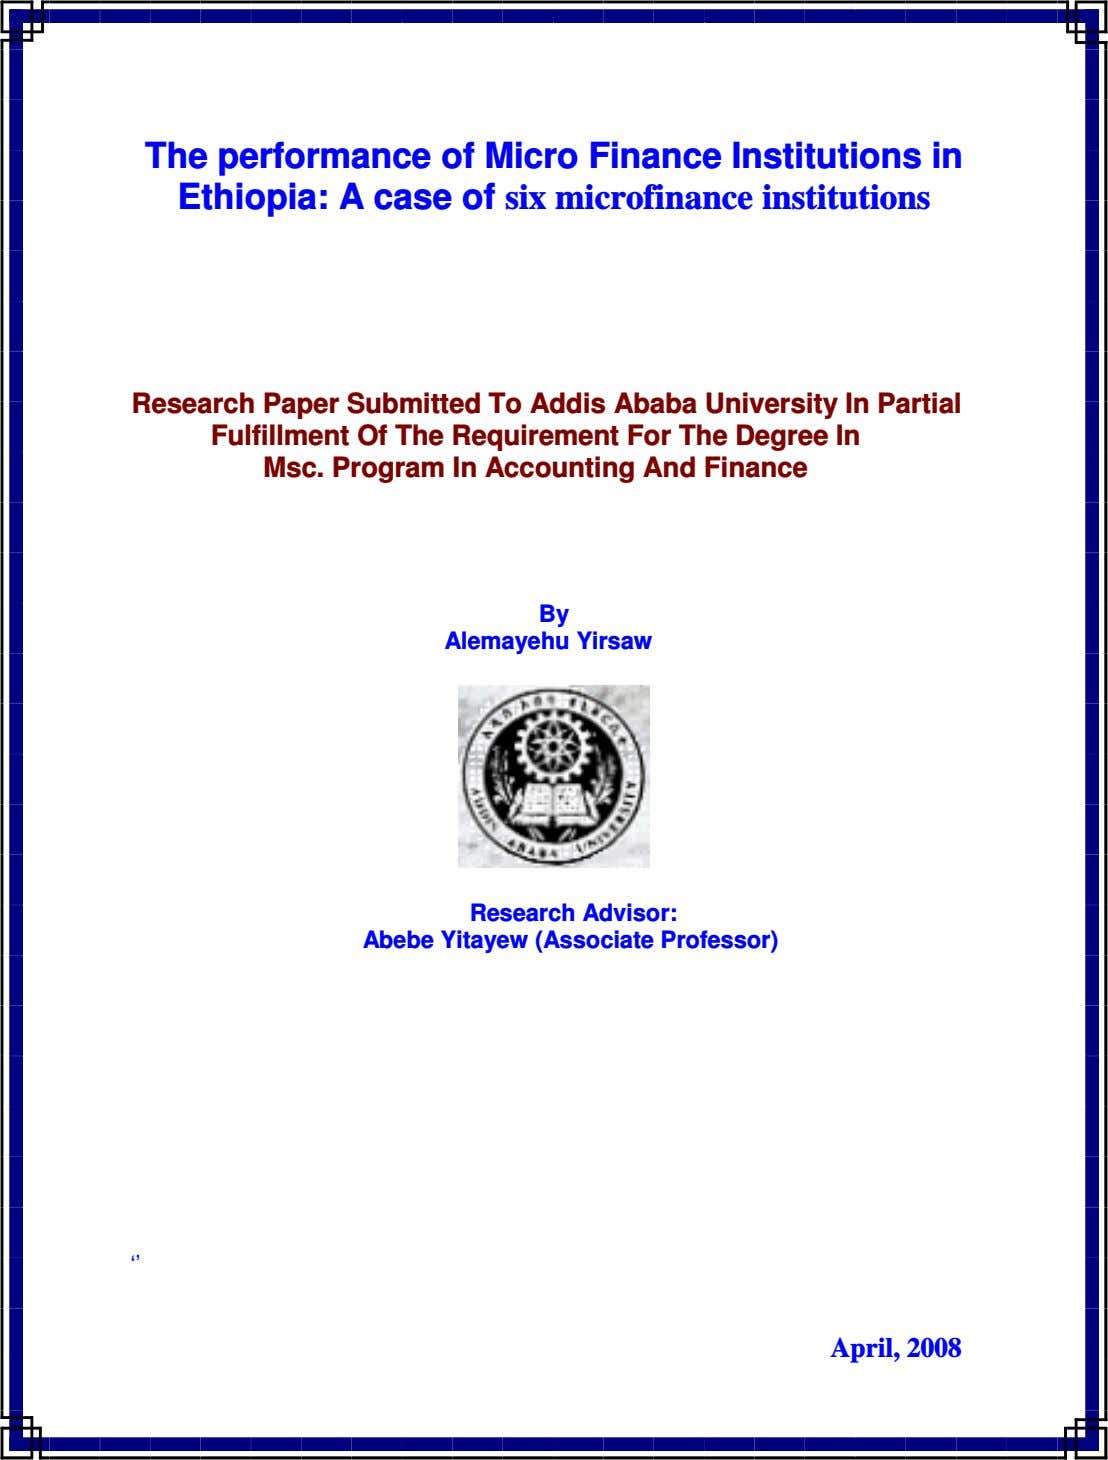 The performance of Micro Finance Institutions in Ethiopia: A case of six microfinance institutions Research